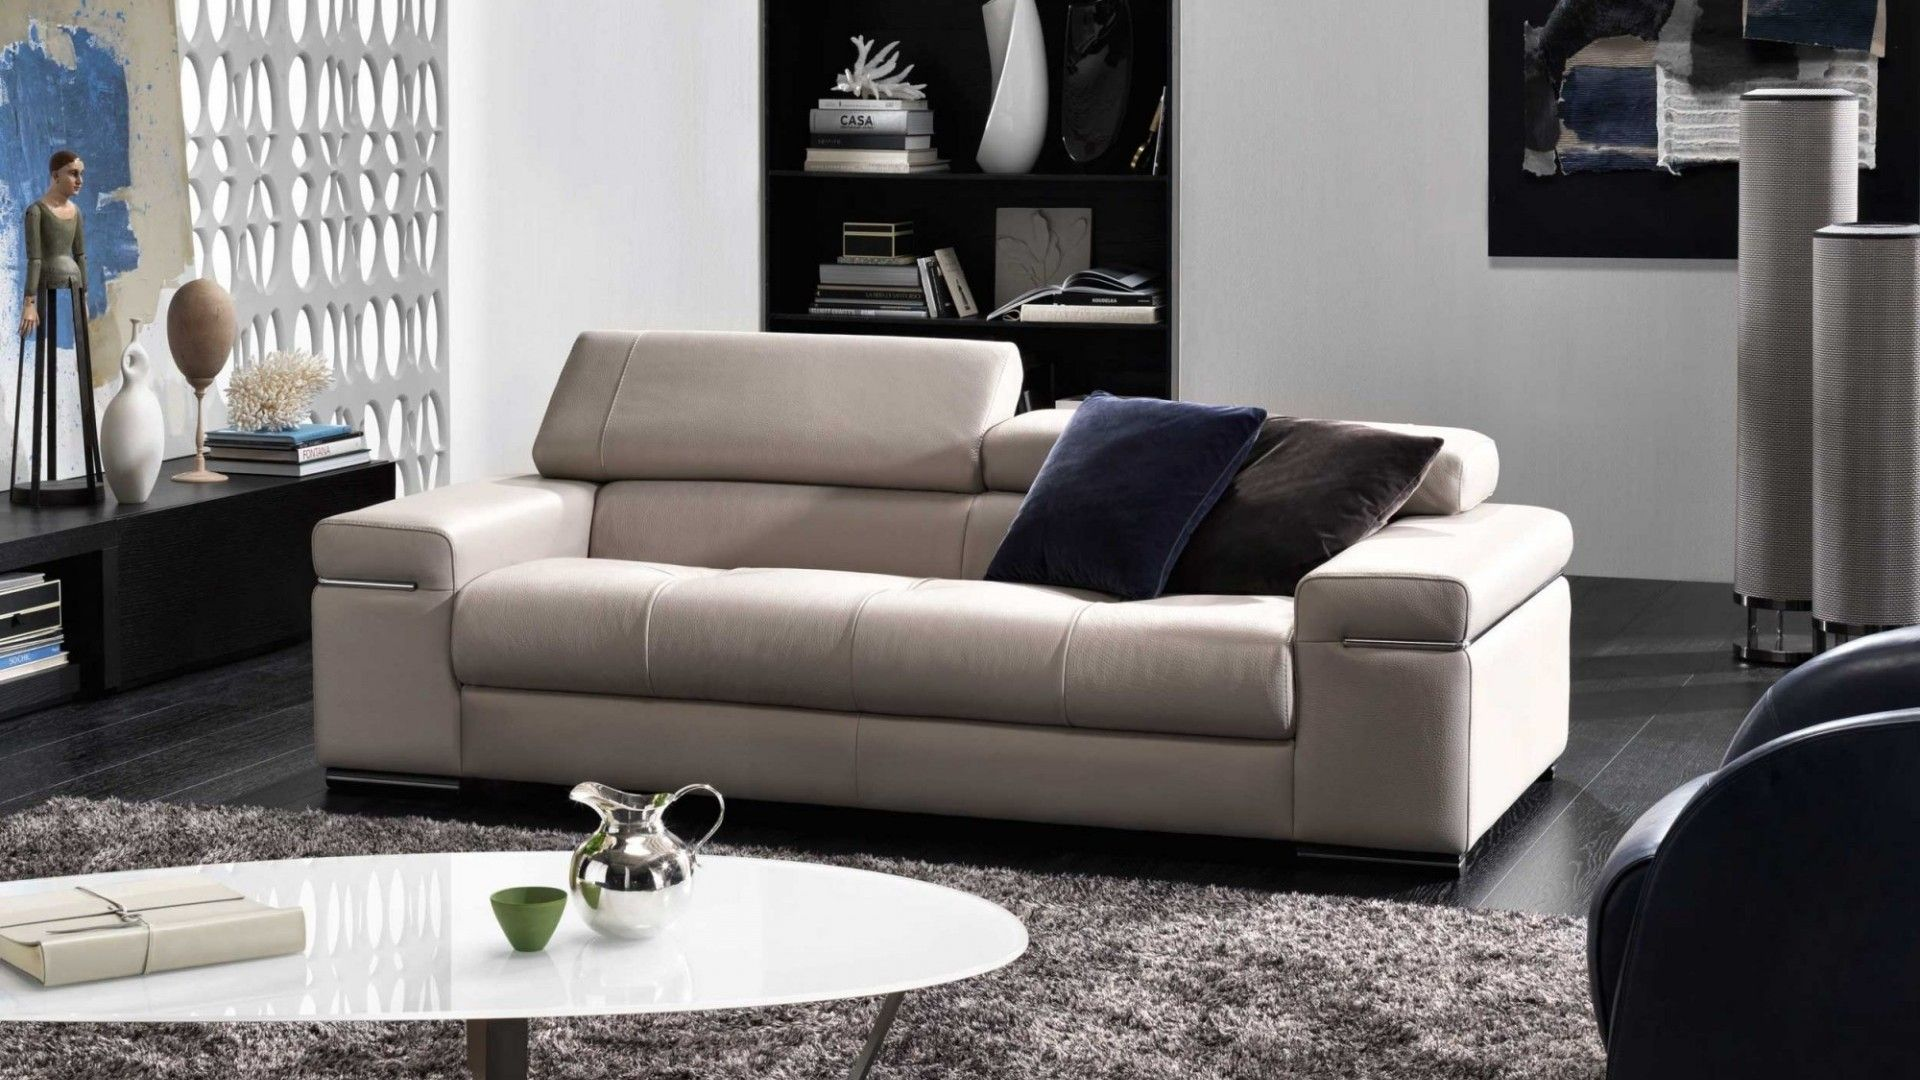 natuzzi italia leather avana sofa natuzzi italia philadelphia 321 south street 215 515. Black Bedroom Furniture Sets. Home Design Ideas